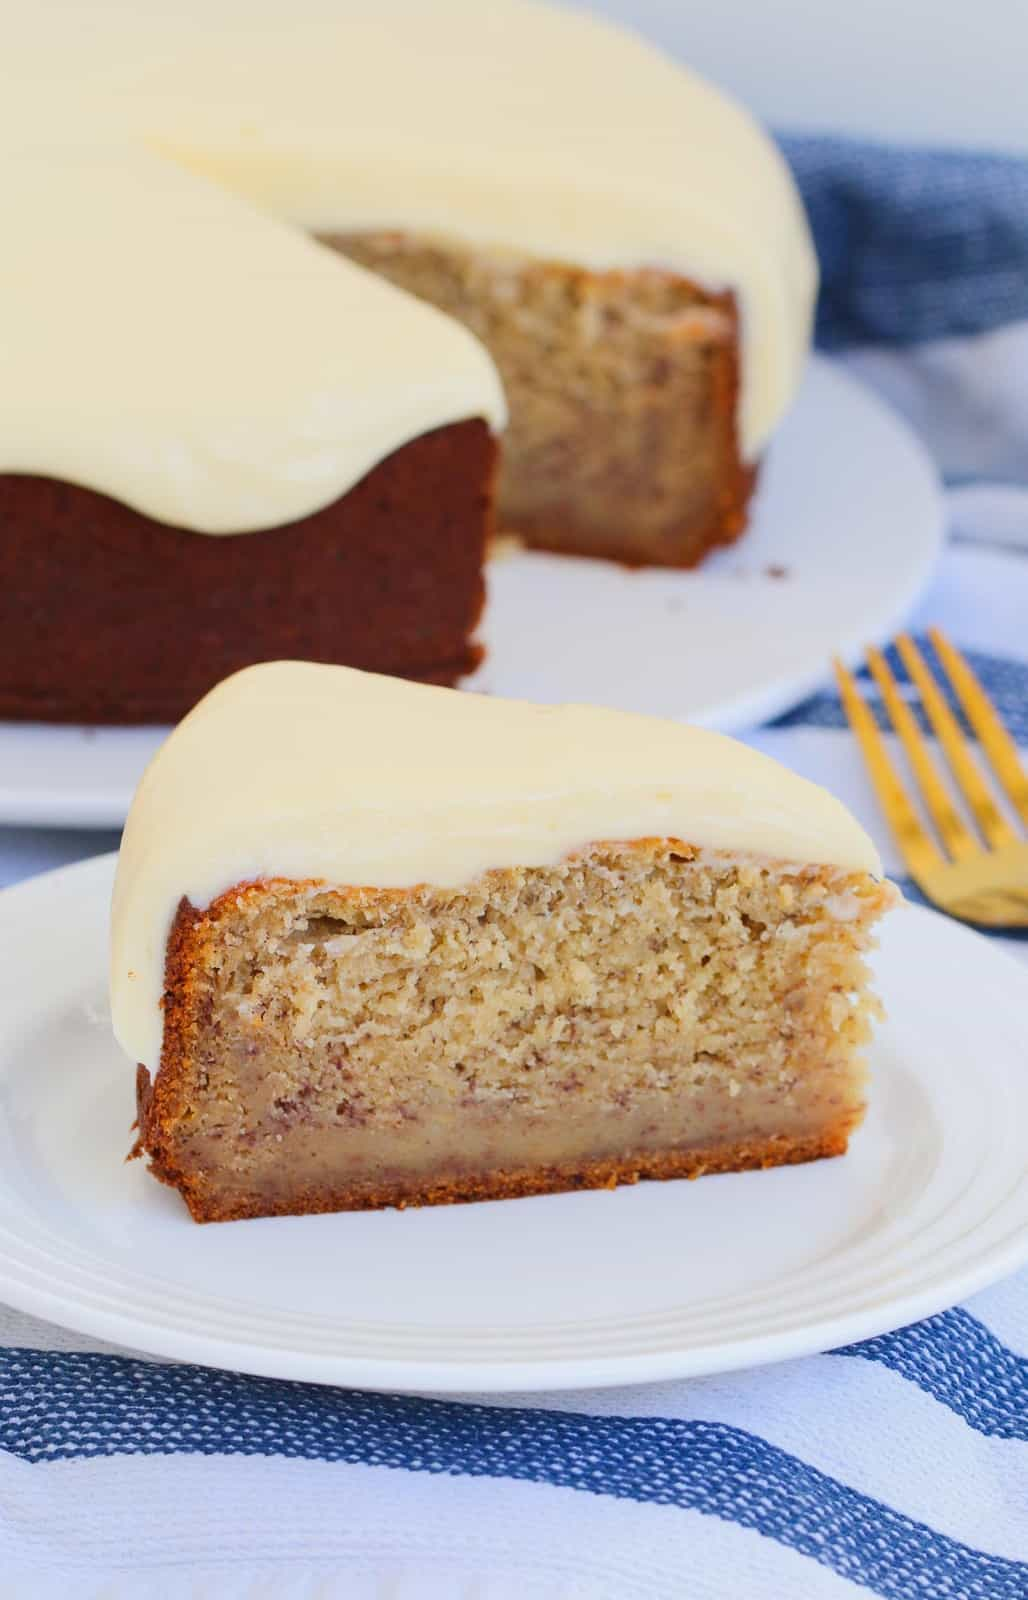 Cream cheese frosting on top of a slice of banana cake.